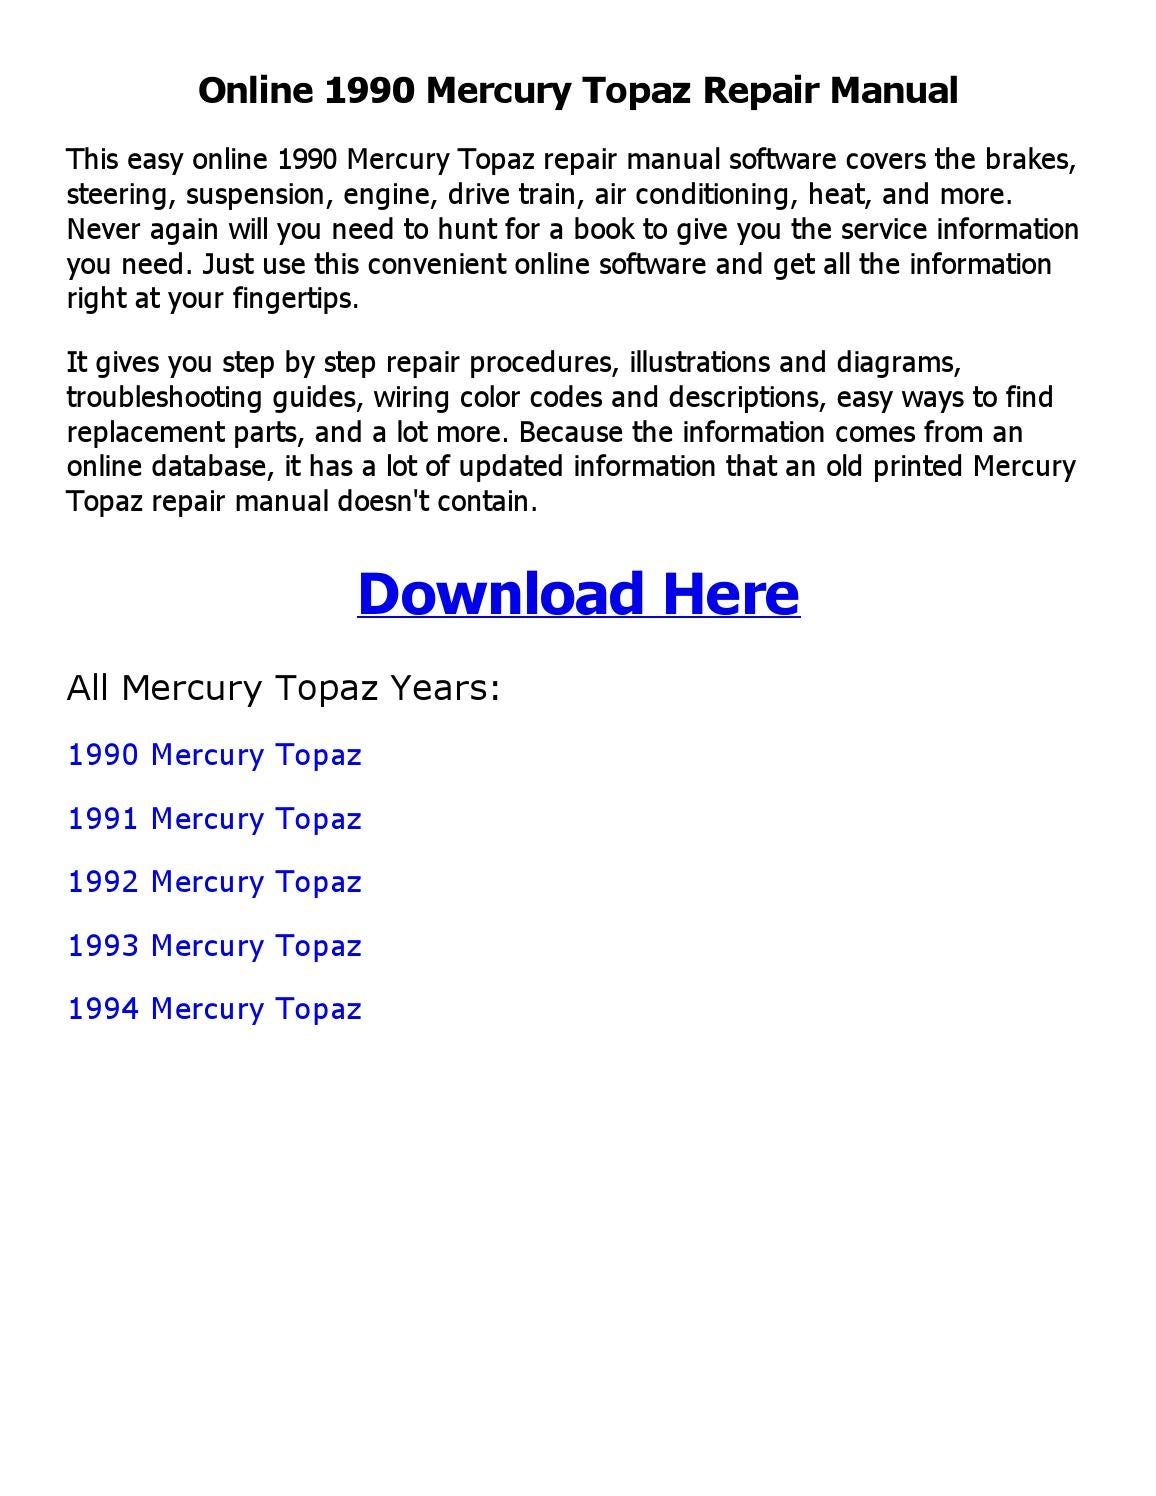 1992 Mercury Topaz Parts Diagram Electrical Wiring Diagrams 1990 Sable Engine Repair Manual Online By Shoaibsiddique Issuu